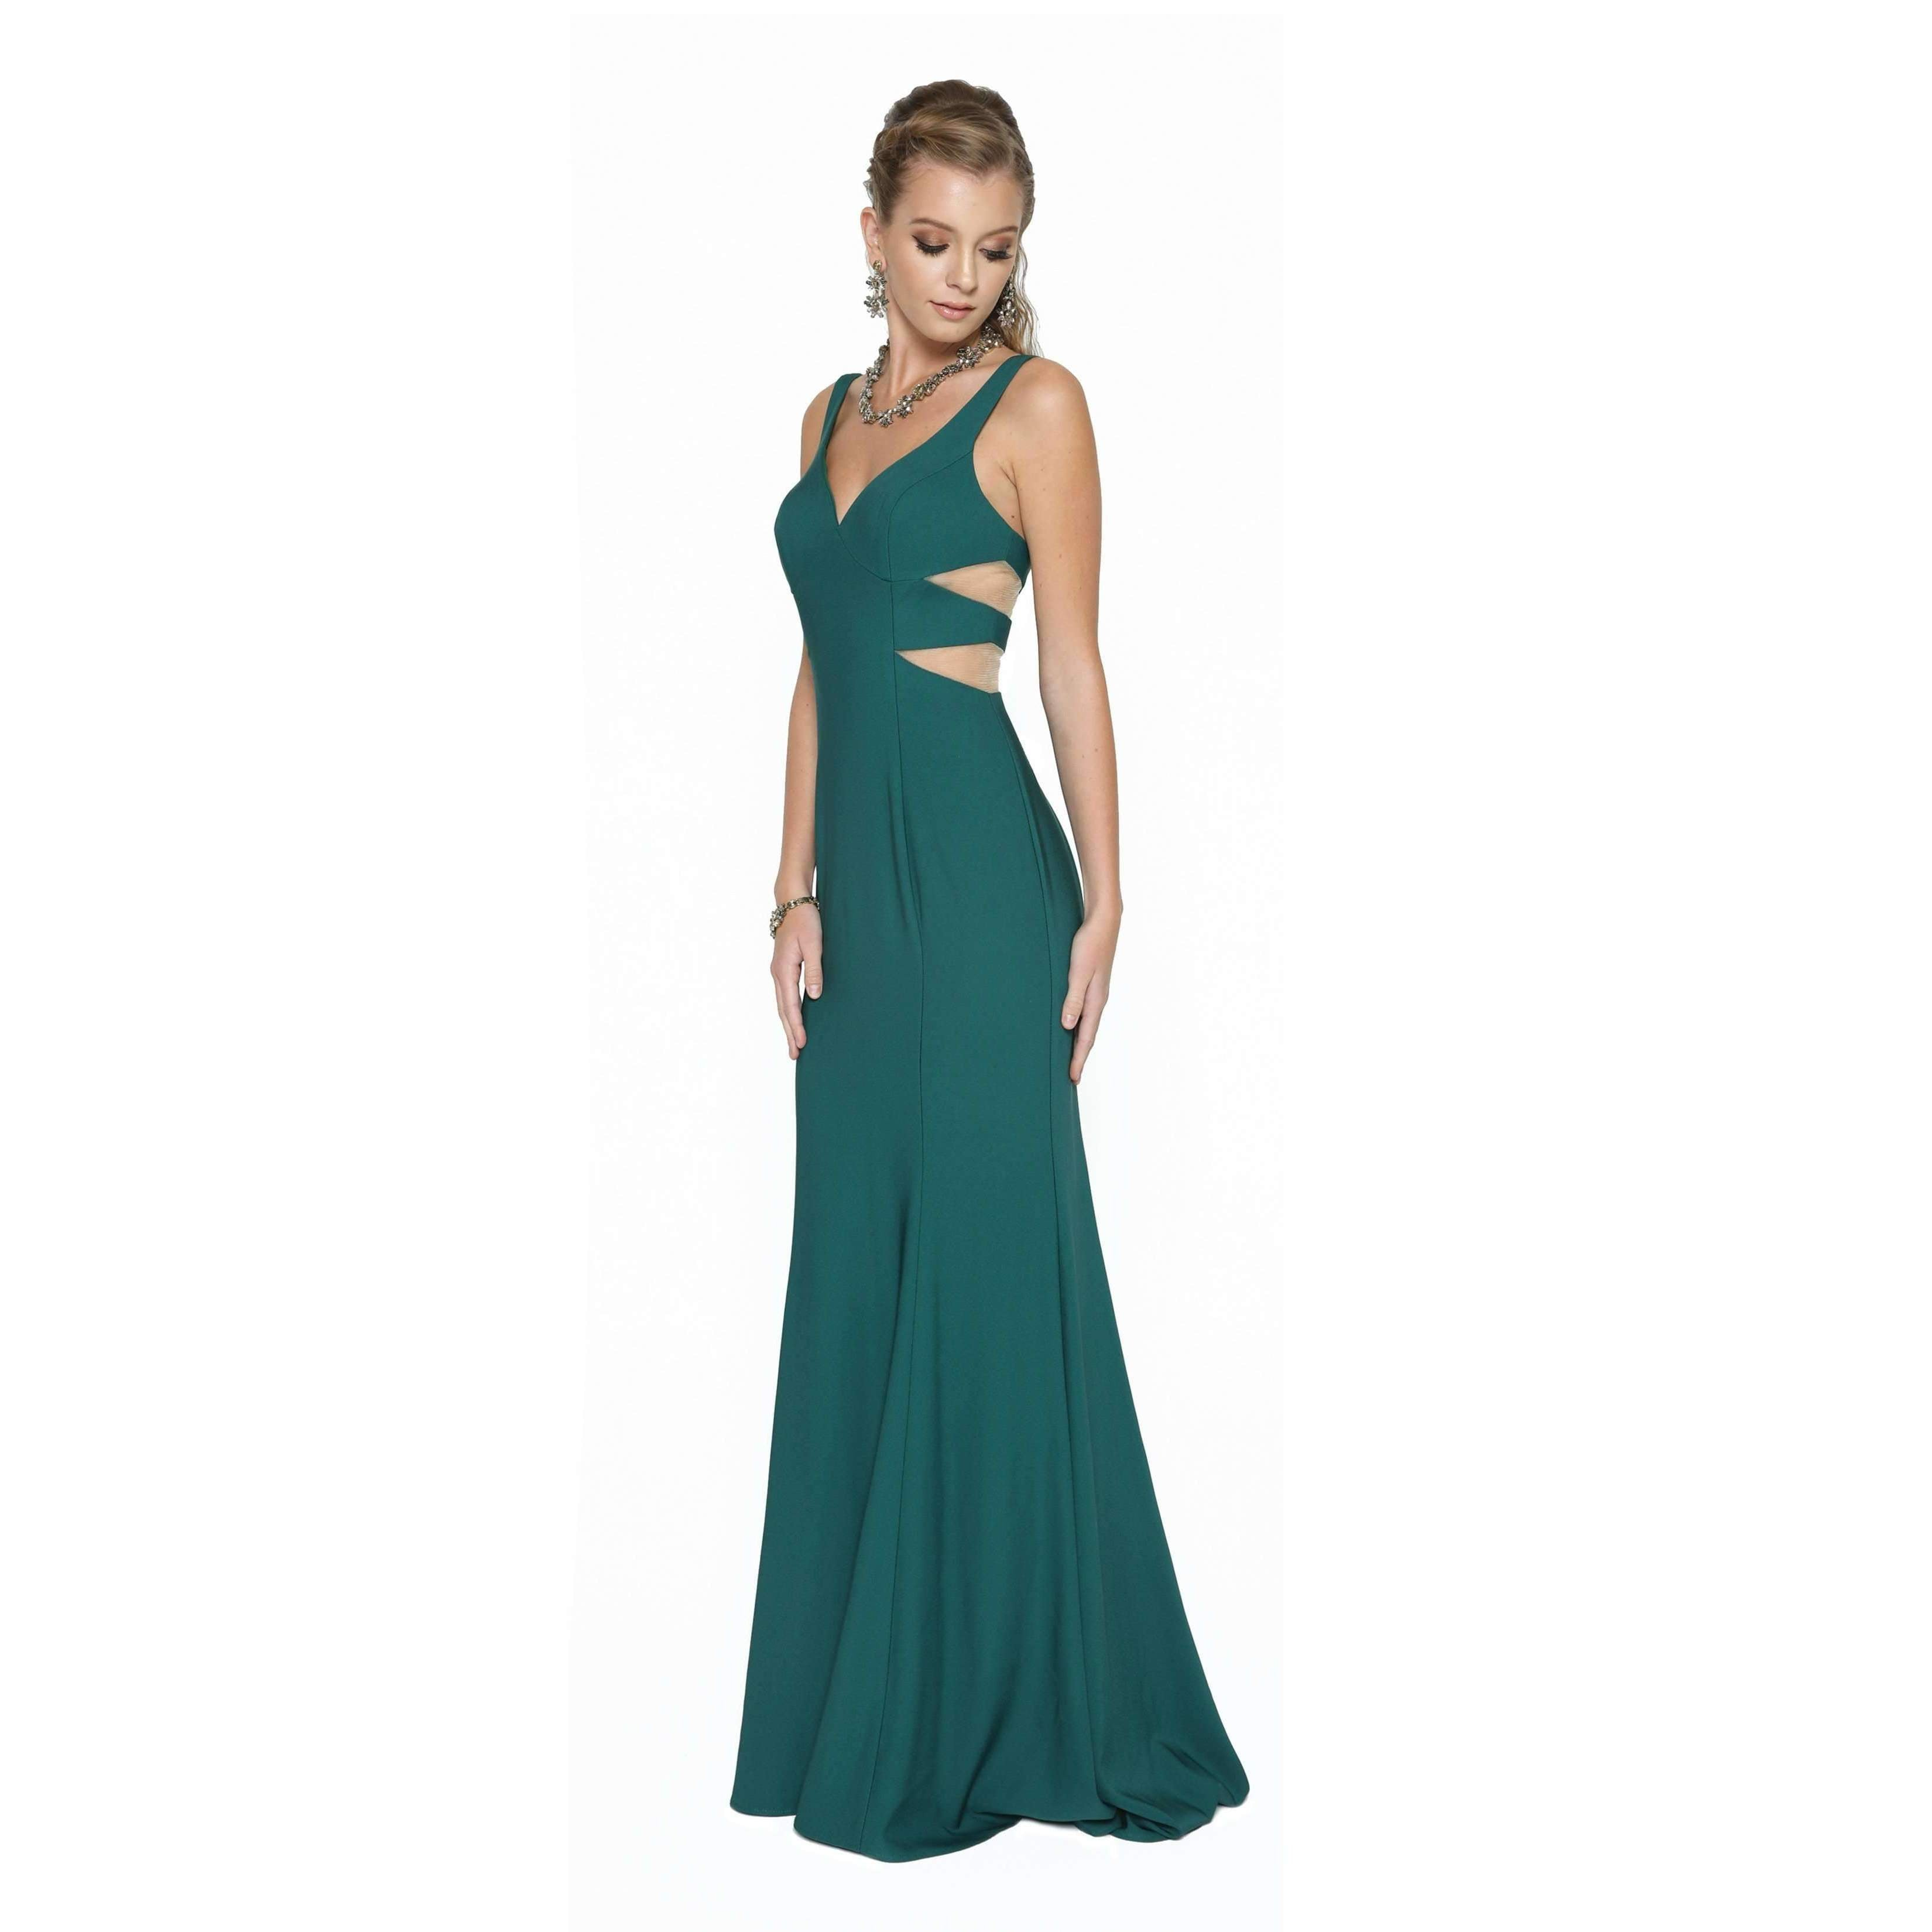 V Neck and Side Cut-Outs Fitted Prom Dress  675 - Julietdresses